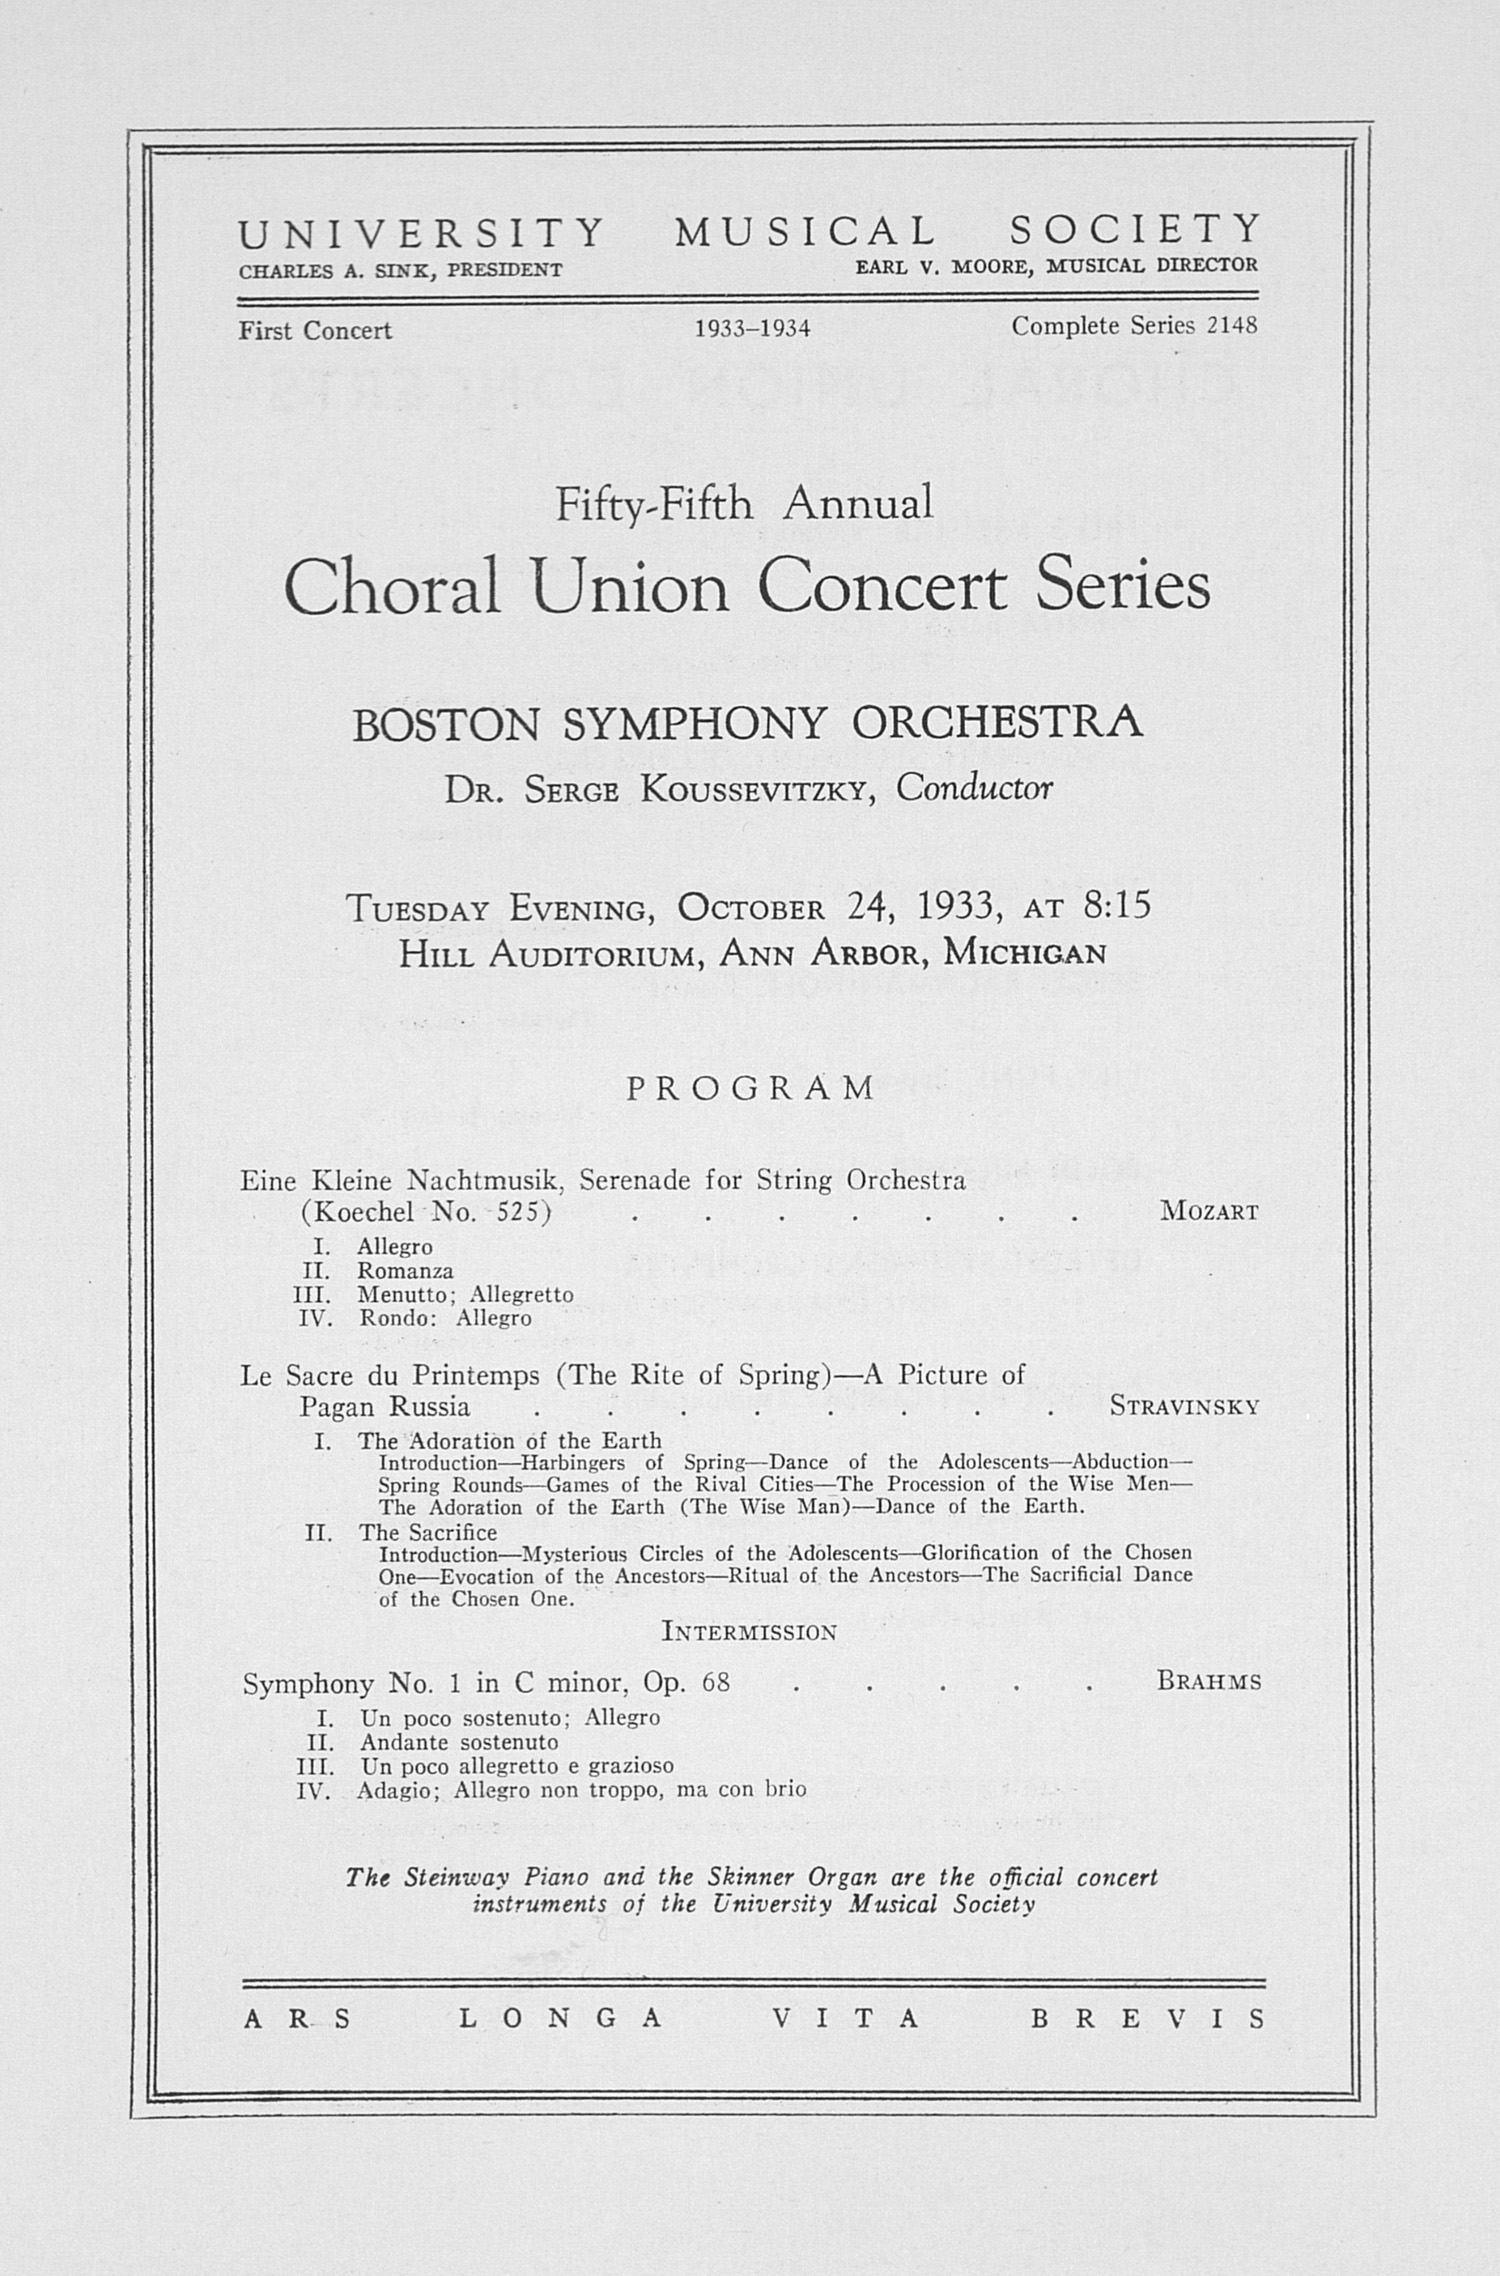 UMS Concert Program, October 24, 1933: Fifty-fifth Annual Choral Union Concert Series -- Boston Symphony Orchestra image